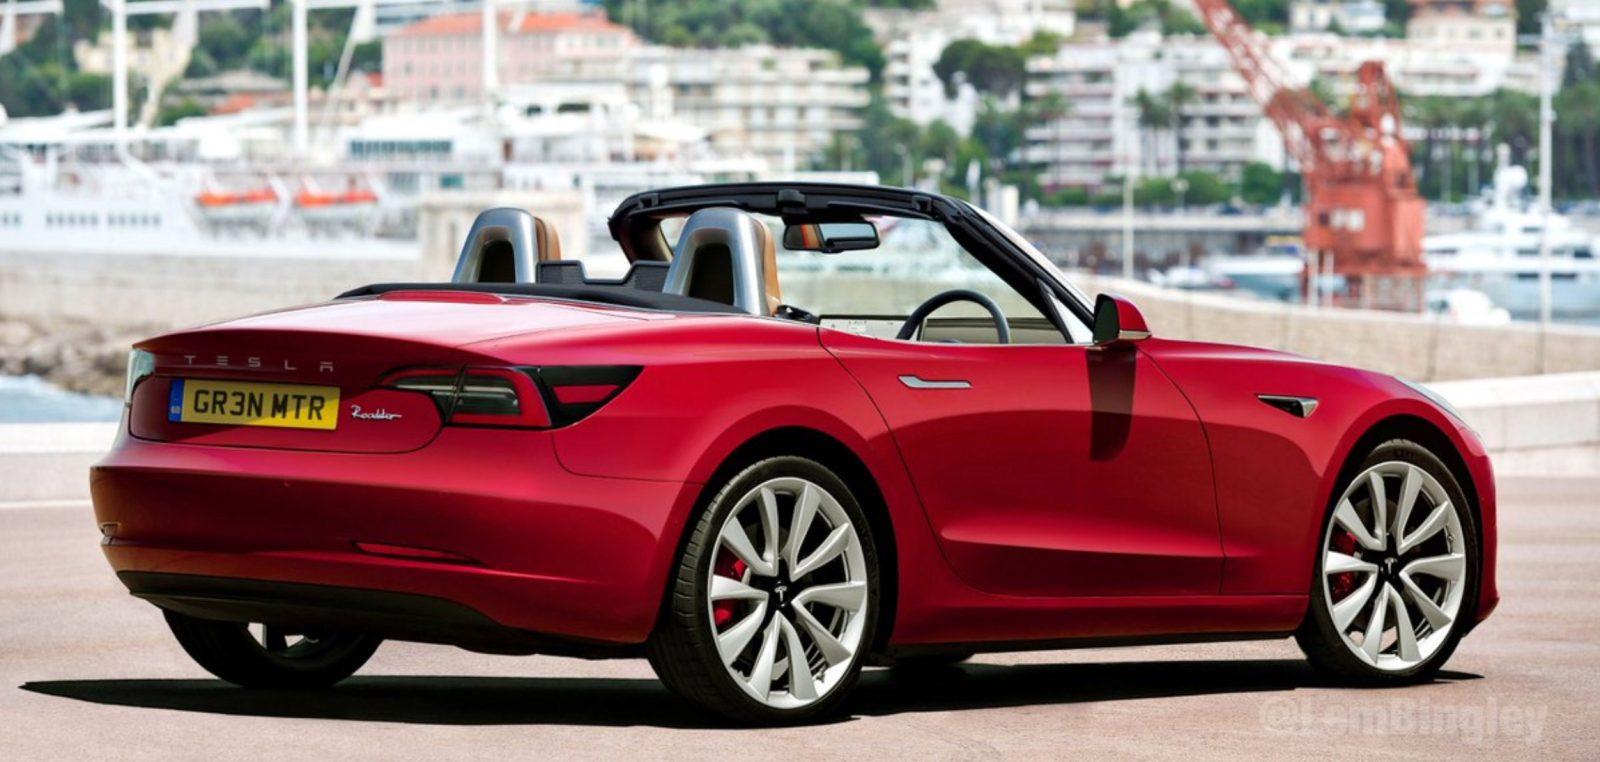 Tesla Miata-size convertible based on Model 3: Love it or Hate it